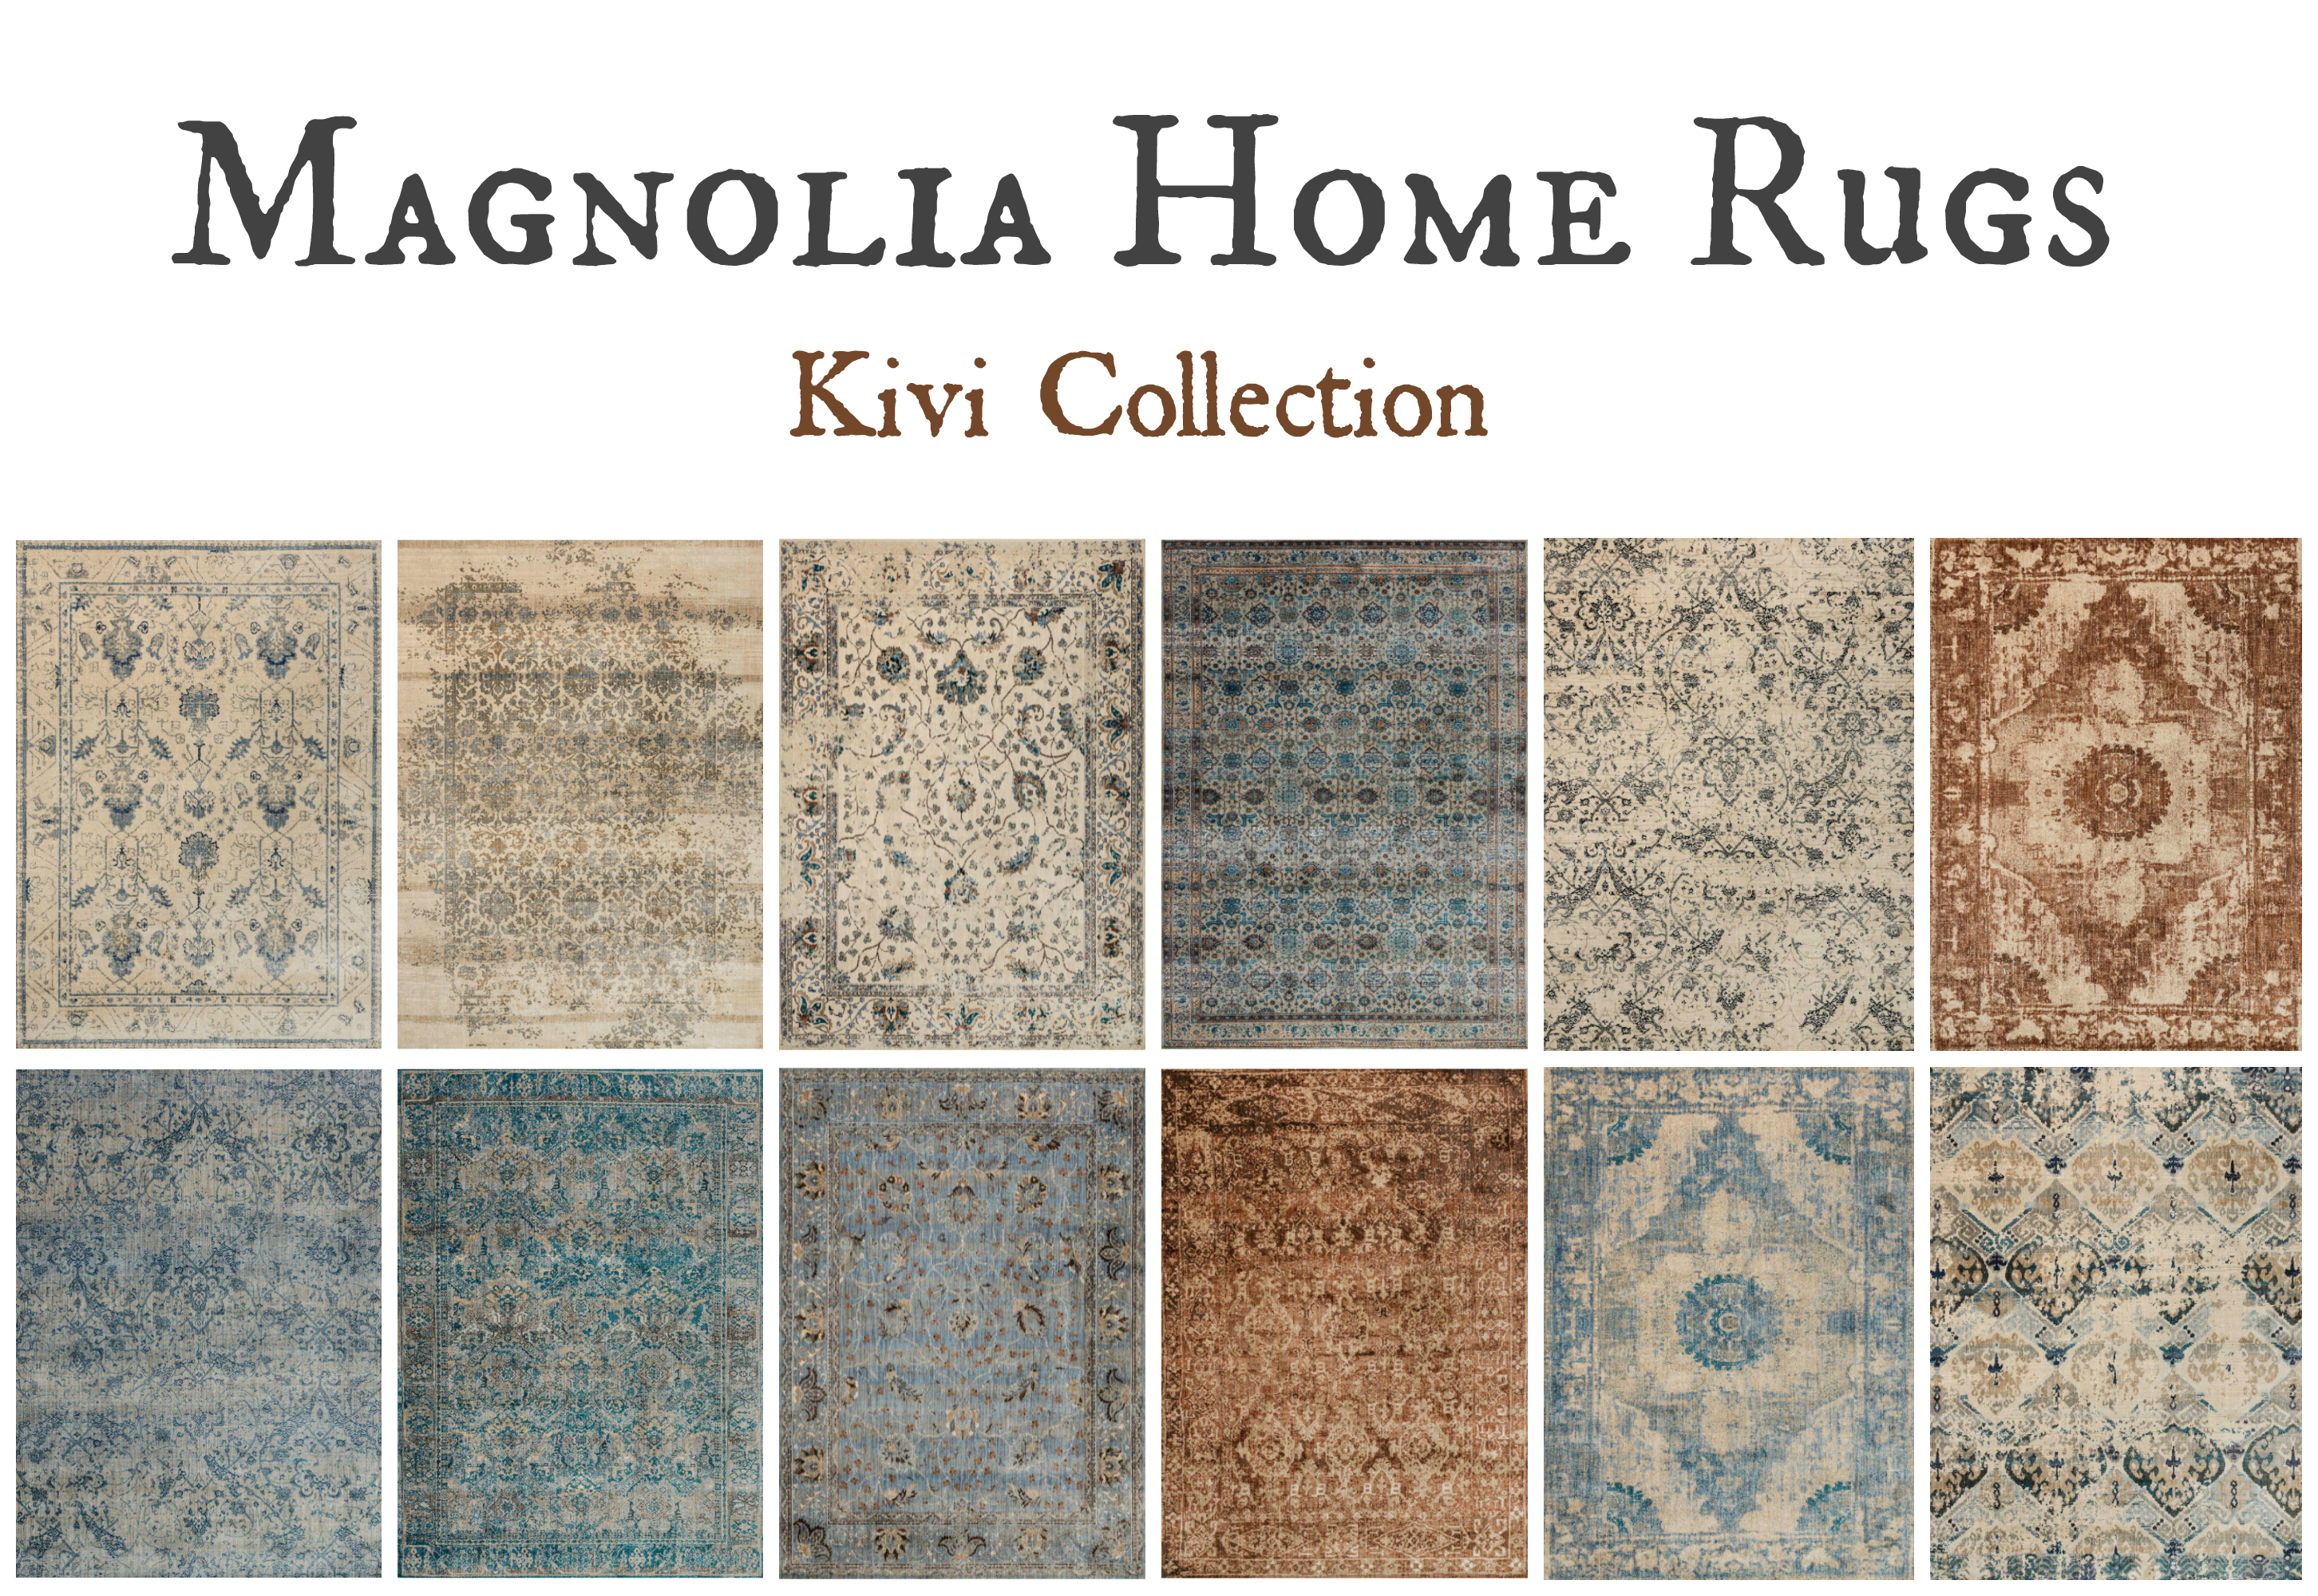 Magnolia Home Rugs Kivi Collection